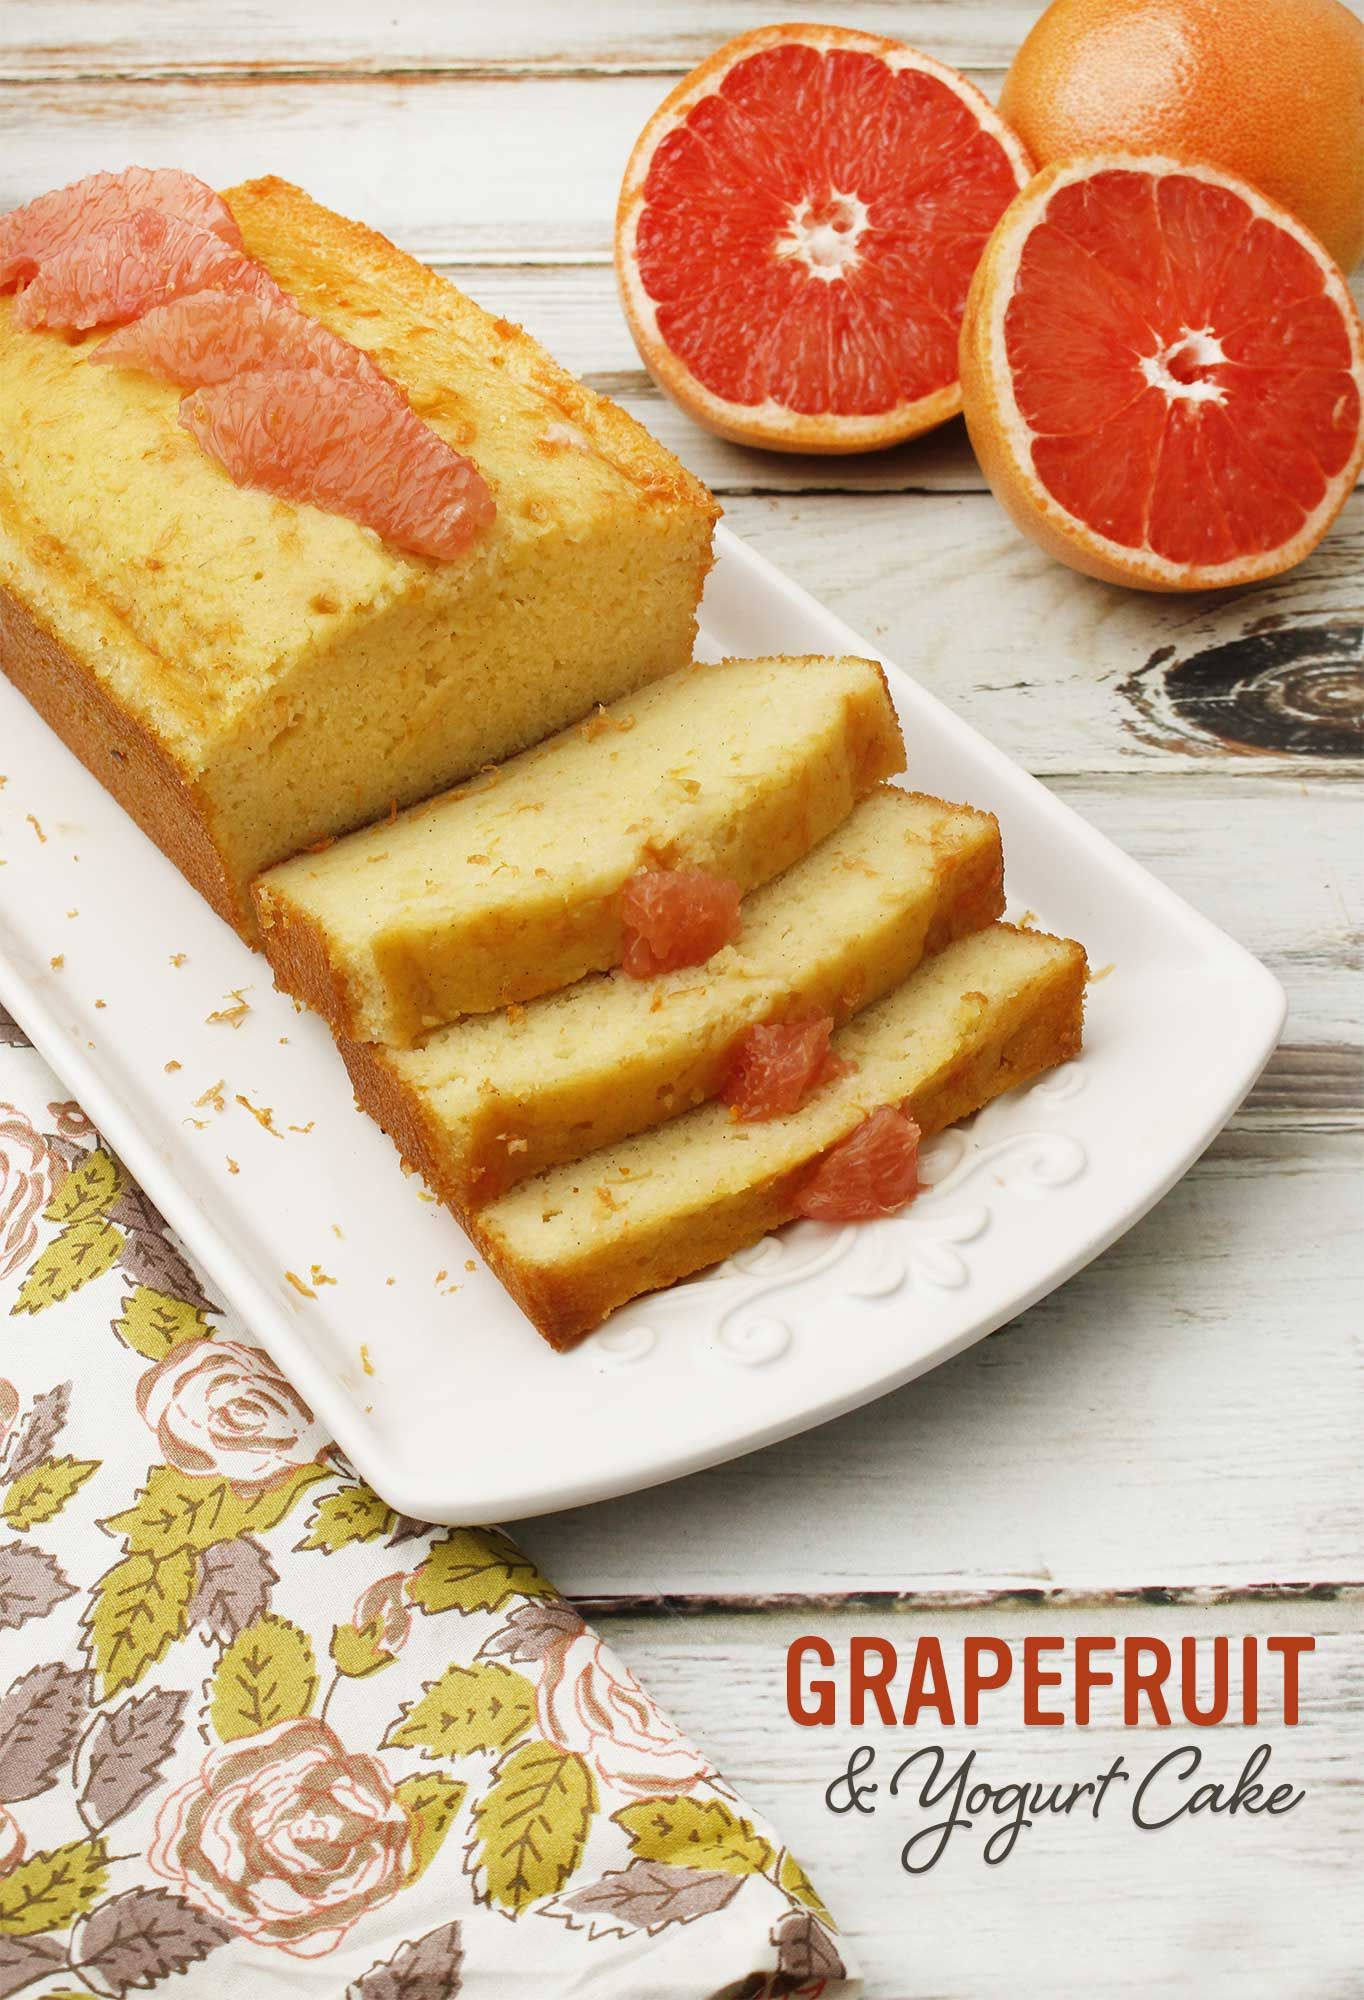 Deliciously moist with a tangy flavor from the yogurt and grapefruit. Though this makes a great dessert, it's also great for breakfast. Farm Fresh To You recipes.